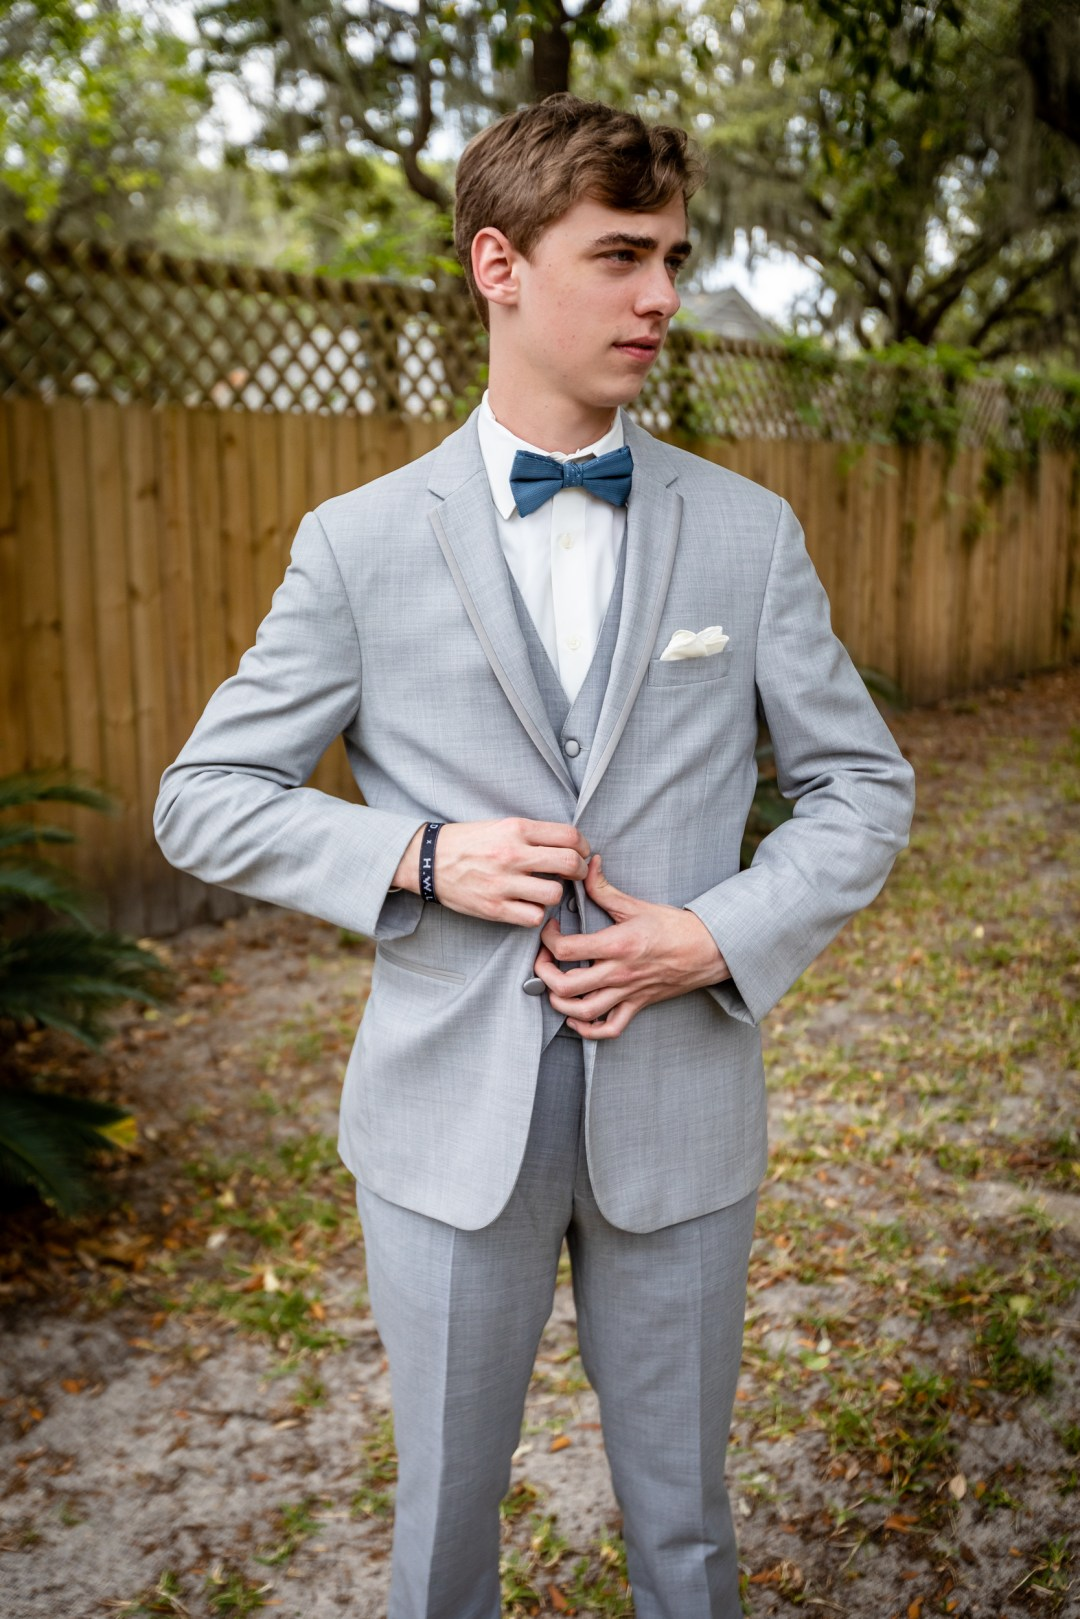 groom buttoning tuxedo before wedding ceremony